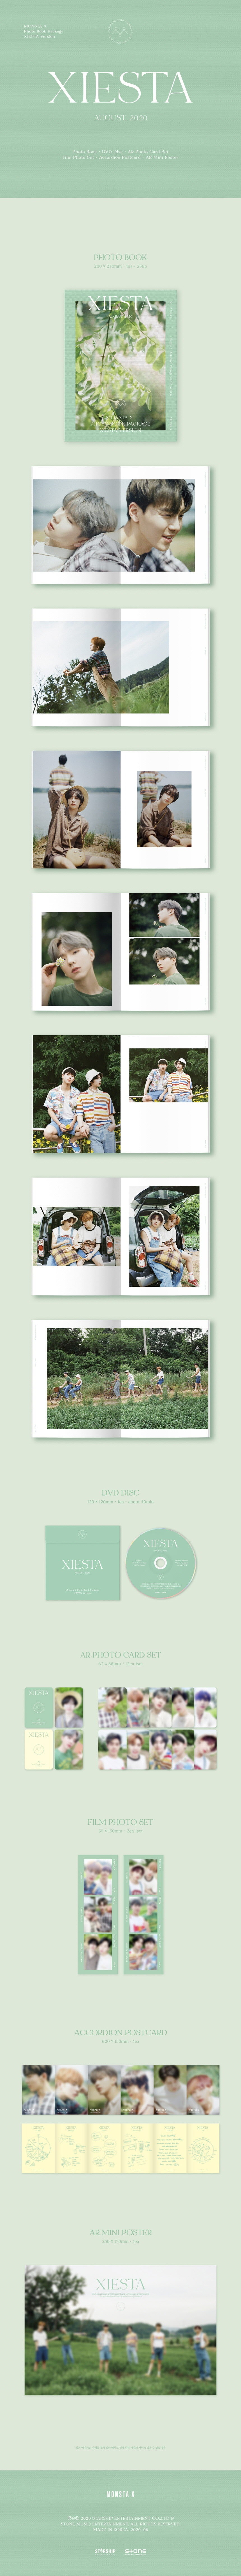 Monsta X 2020 Photobook Xiesta UK